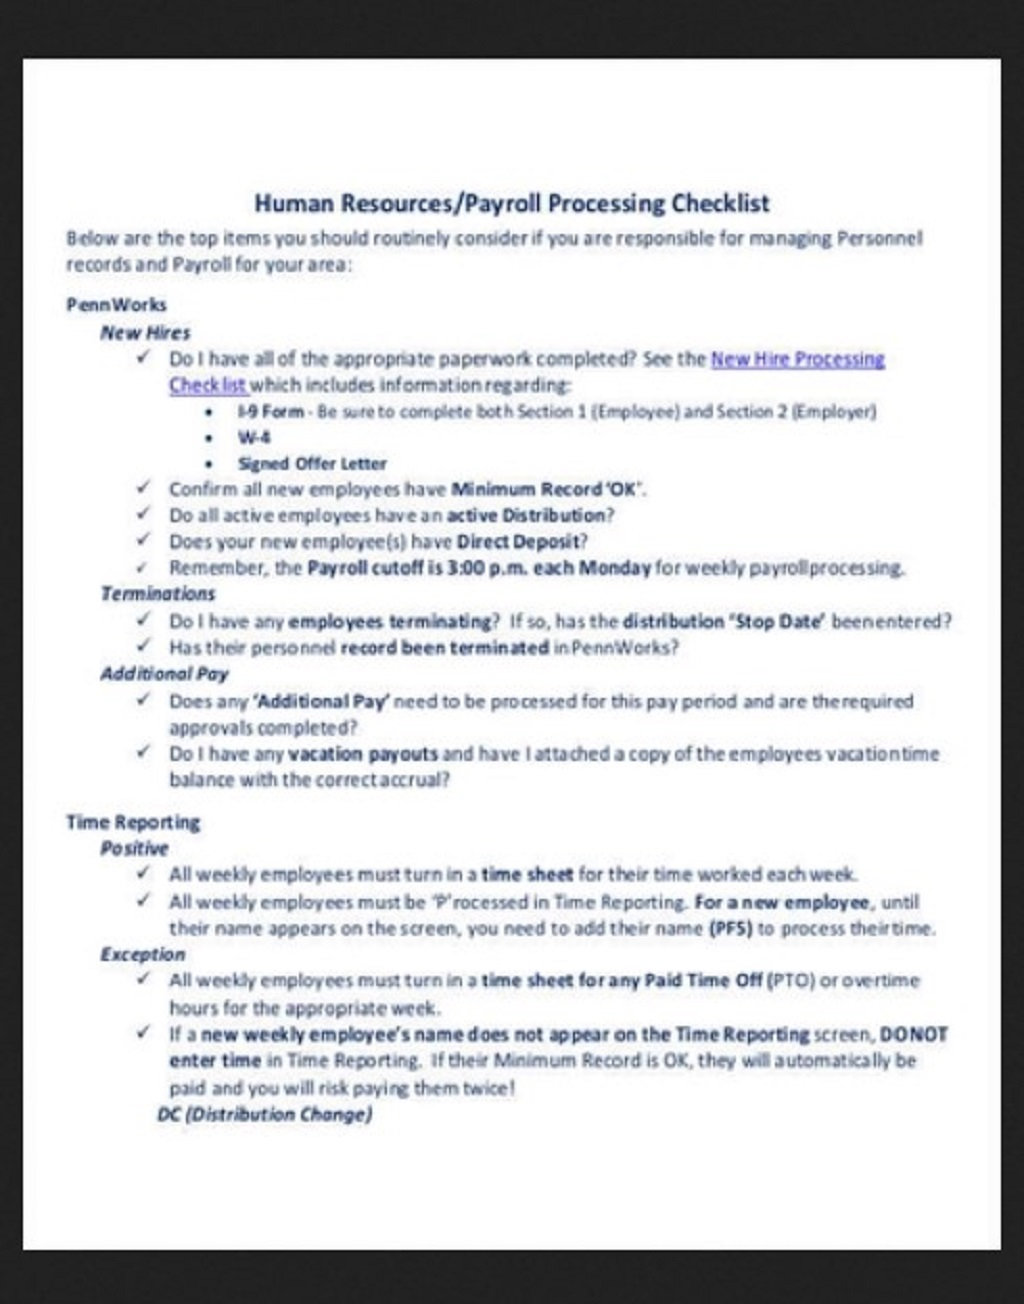 HR Processing Payroll Checklist Template Example Form Hr Daily For Audit Strategies Startups Excel Documents  Examples Large